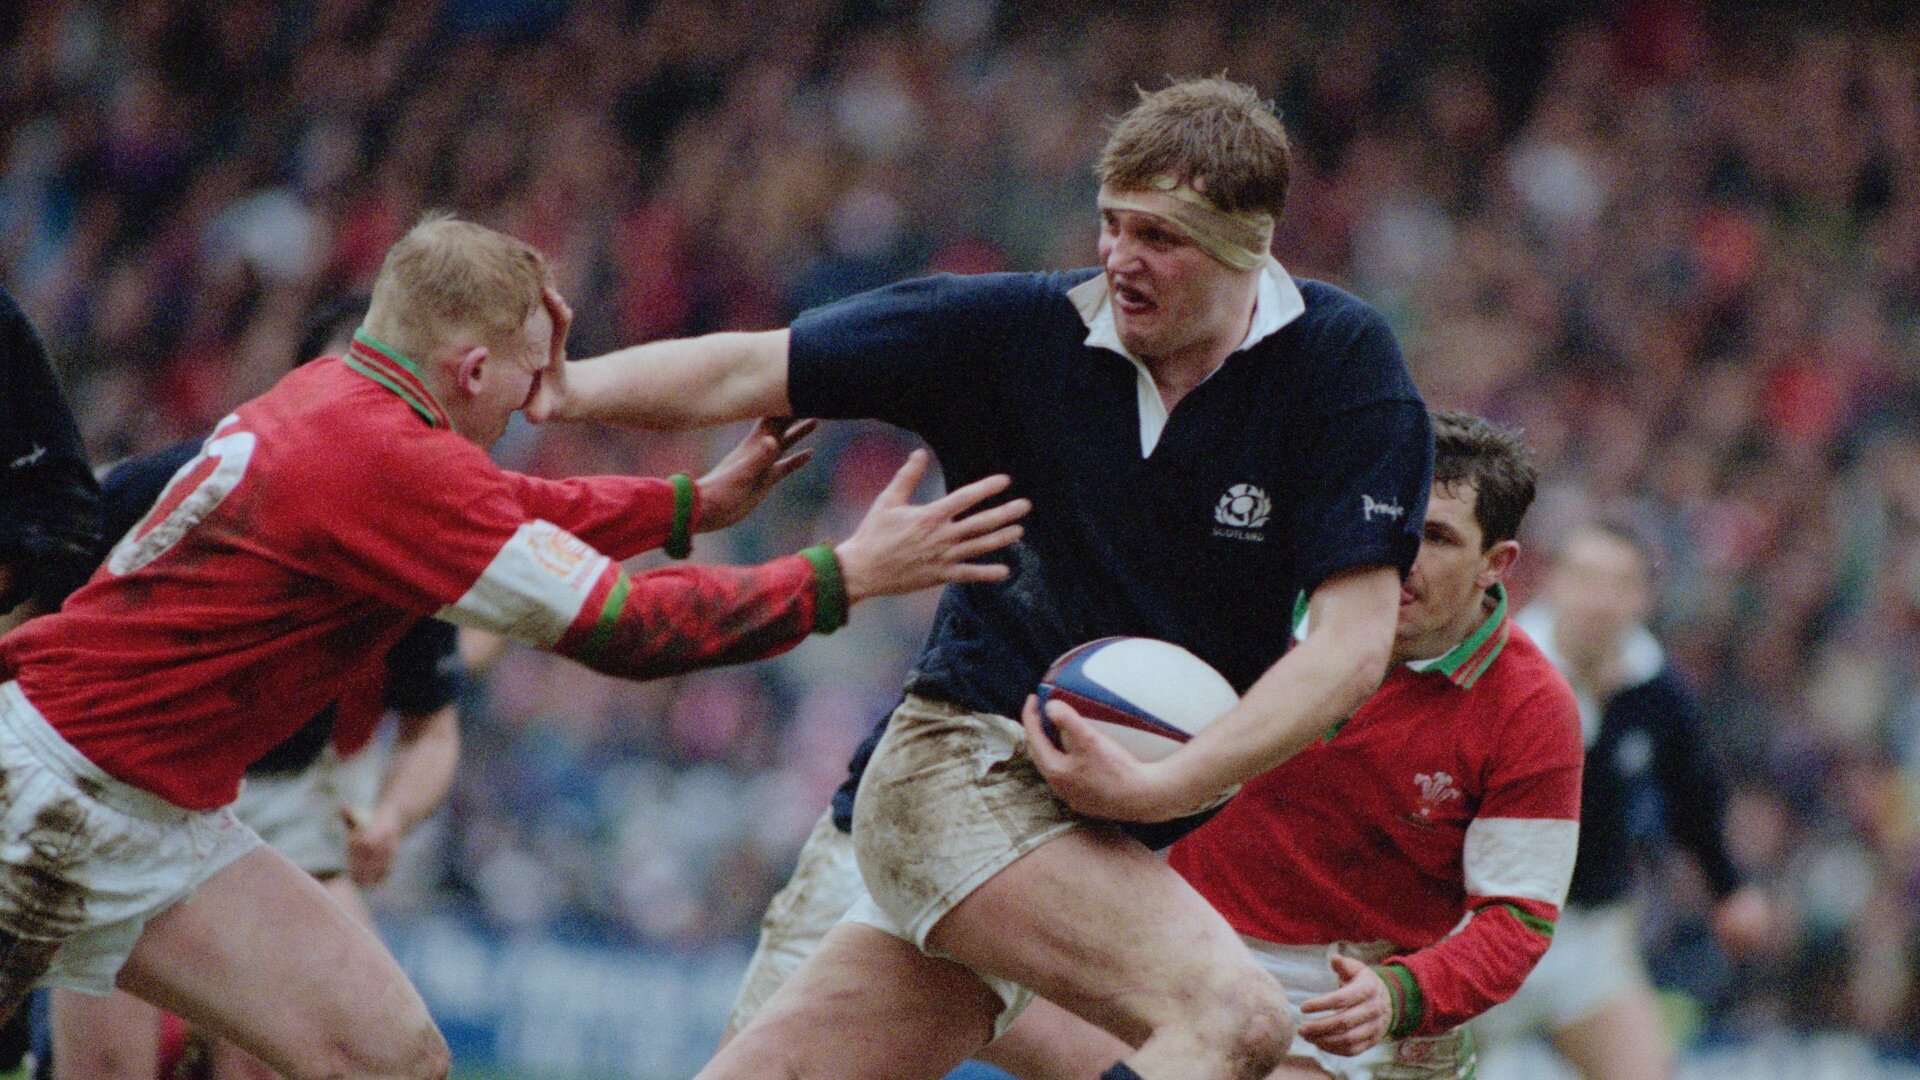 Latest Doddie Weir Dodcast podcast: 'There is a glimmer of hope'